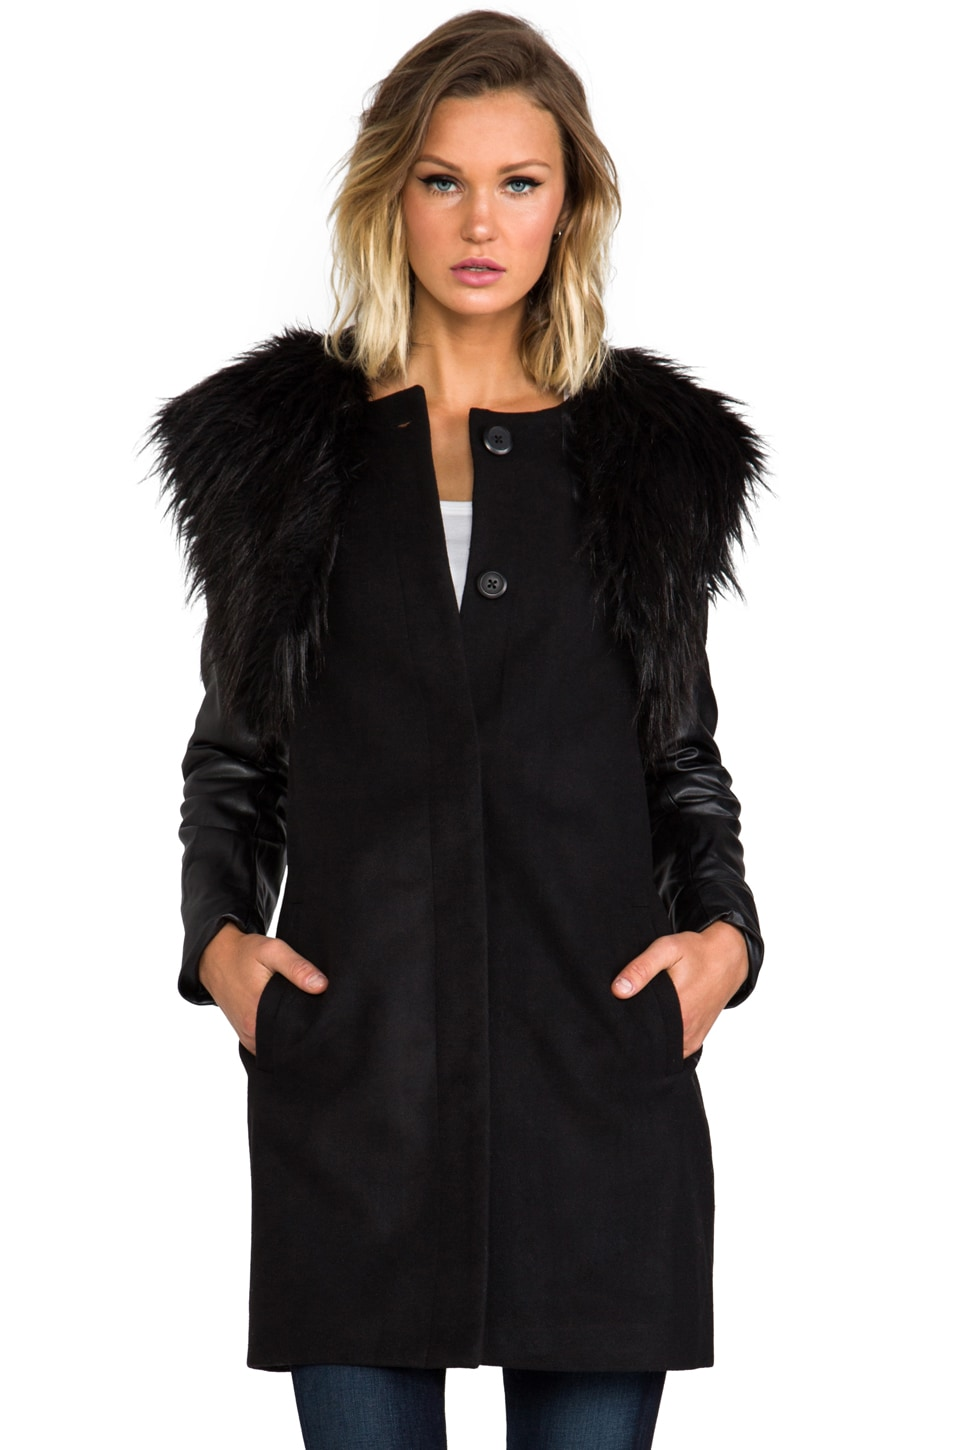 BB Dakota Cruz Melton Coat w/ Detachable Faux Fur Vest in Black